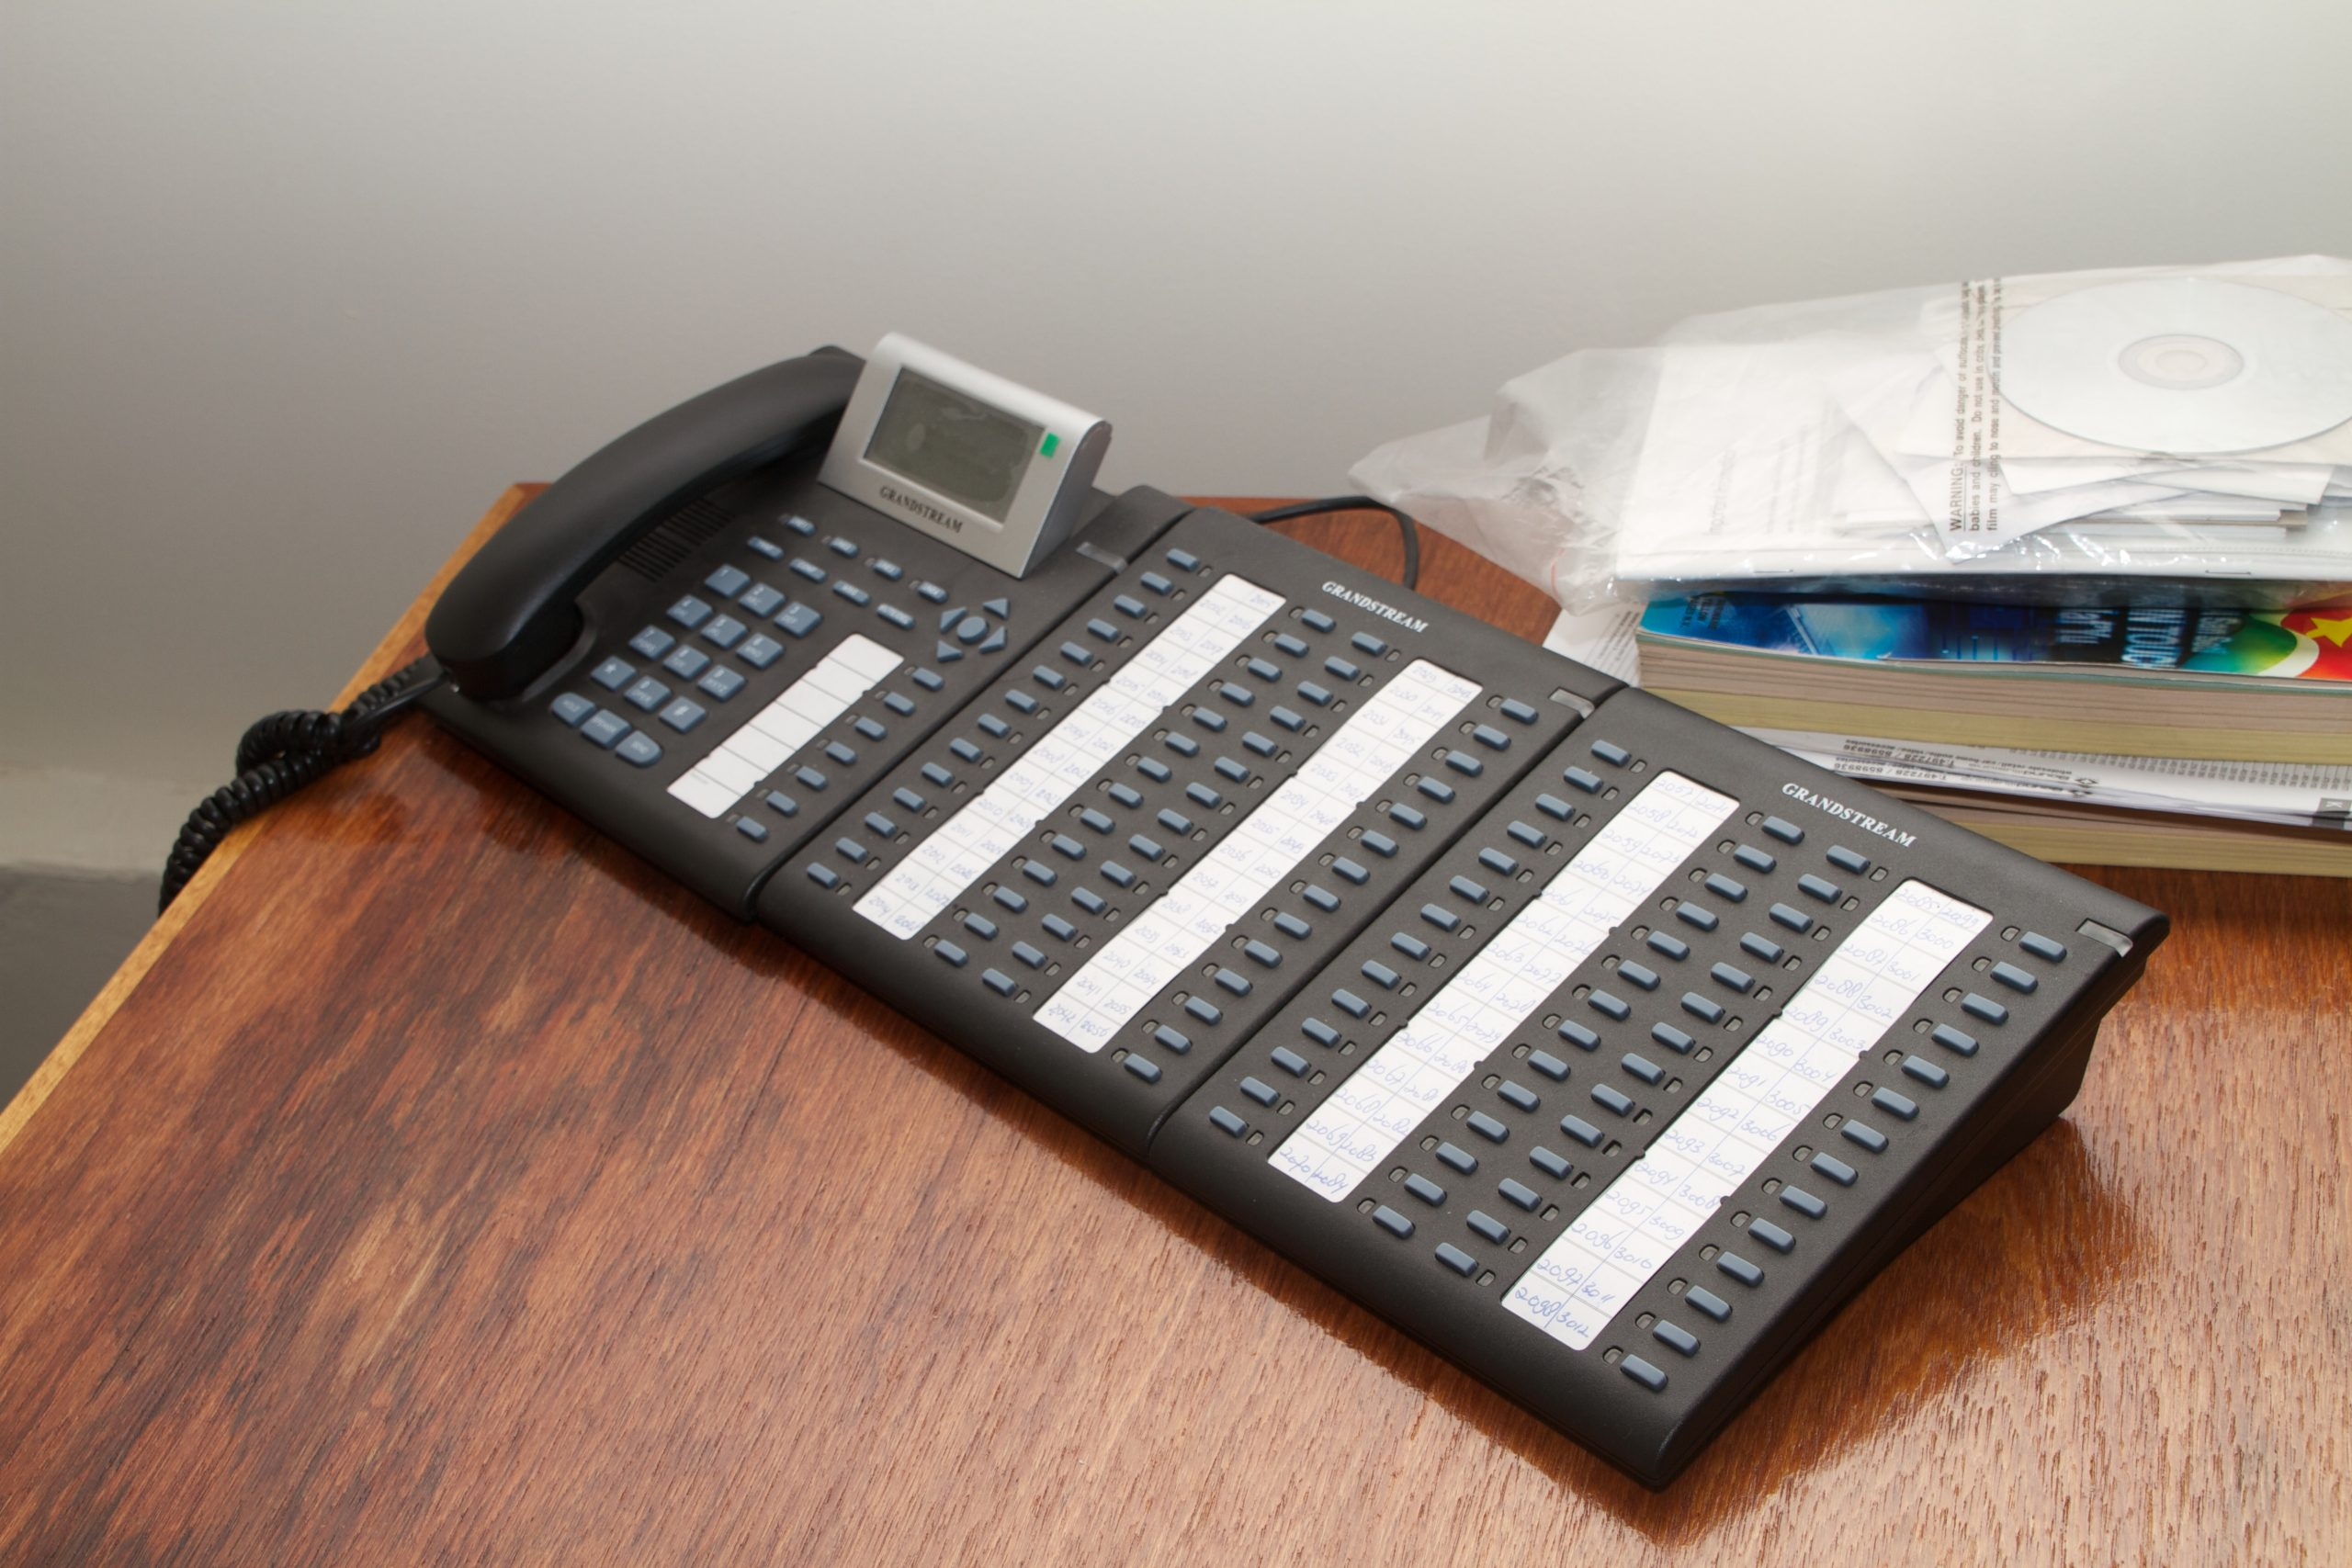 MG 8871 scaled - NV Novoteqnica - voip IT ICT Suriname